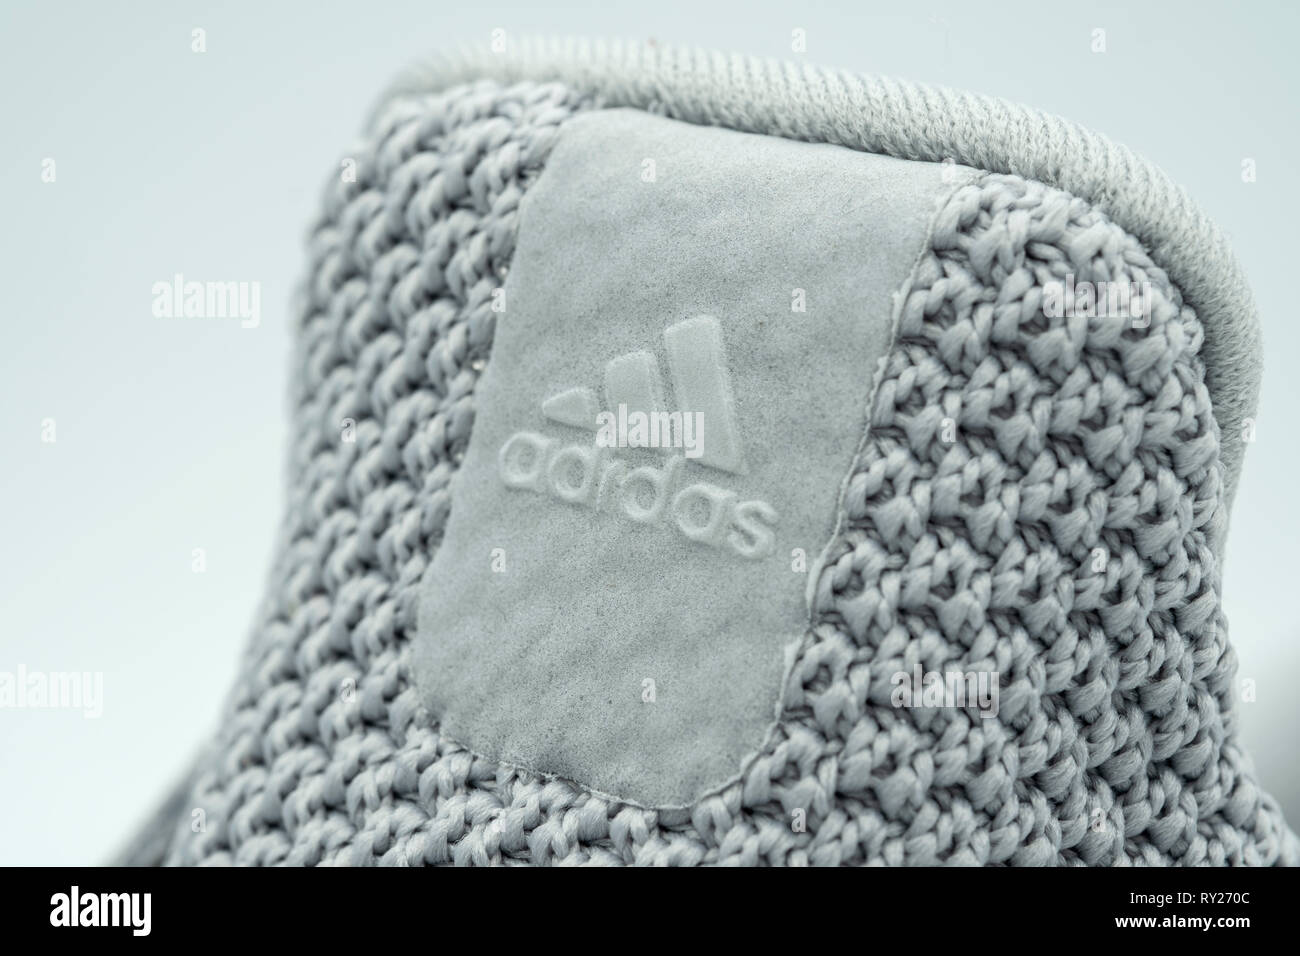 Adidas logo on the tongue of an UltraBoost running shoe - Stock Image